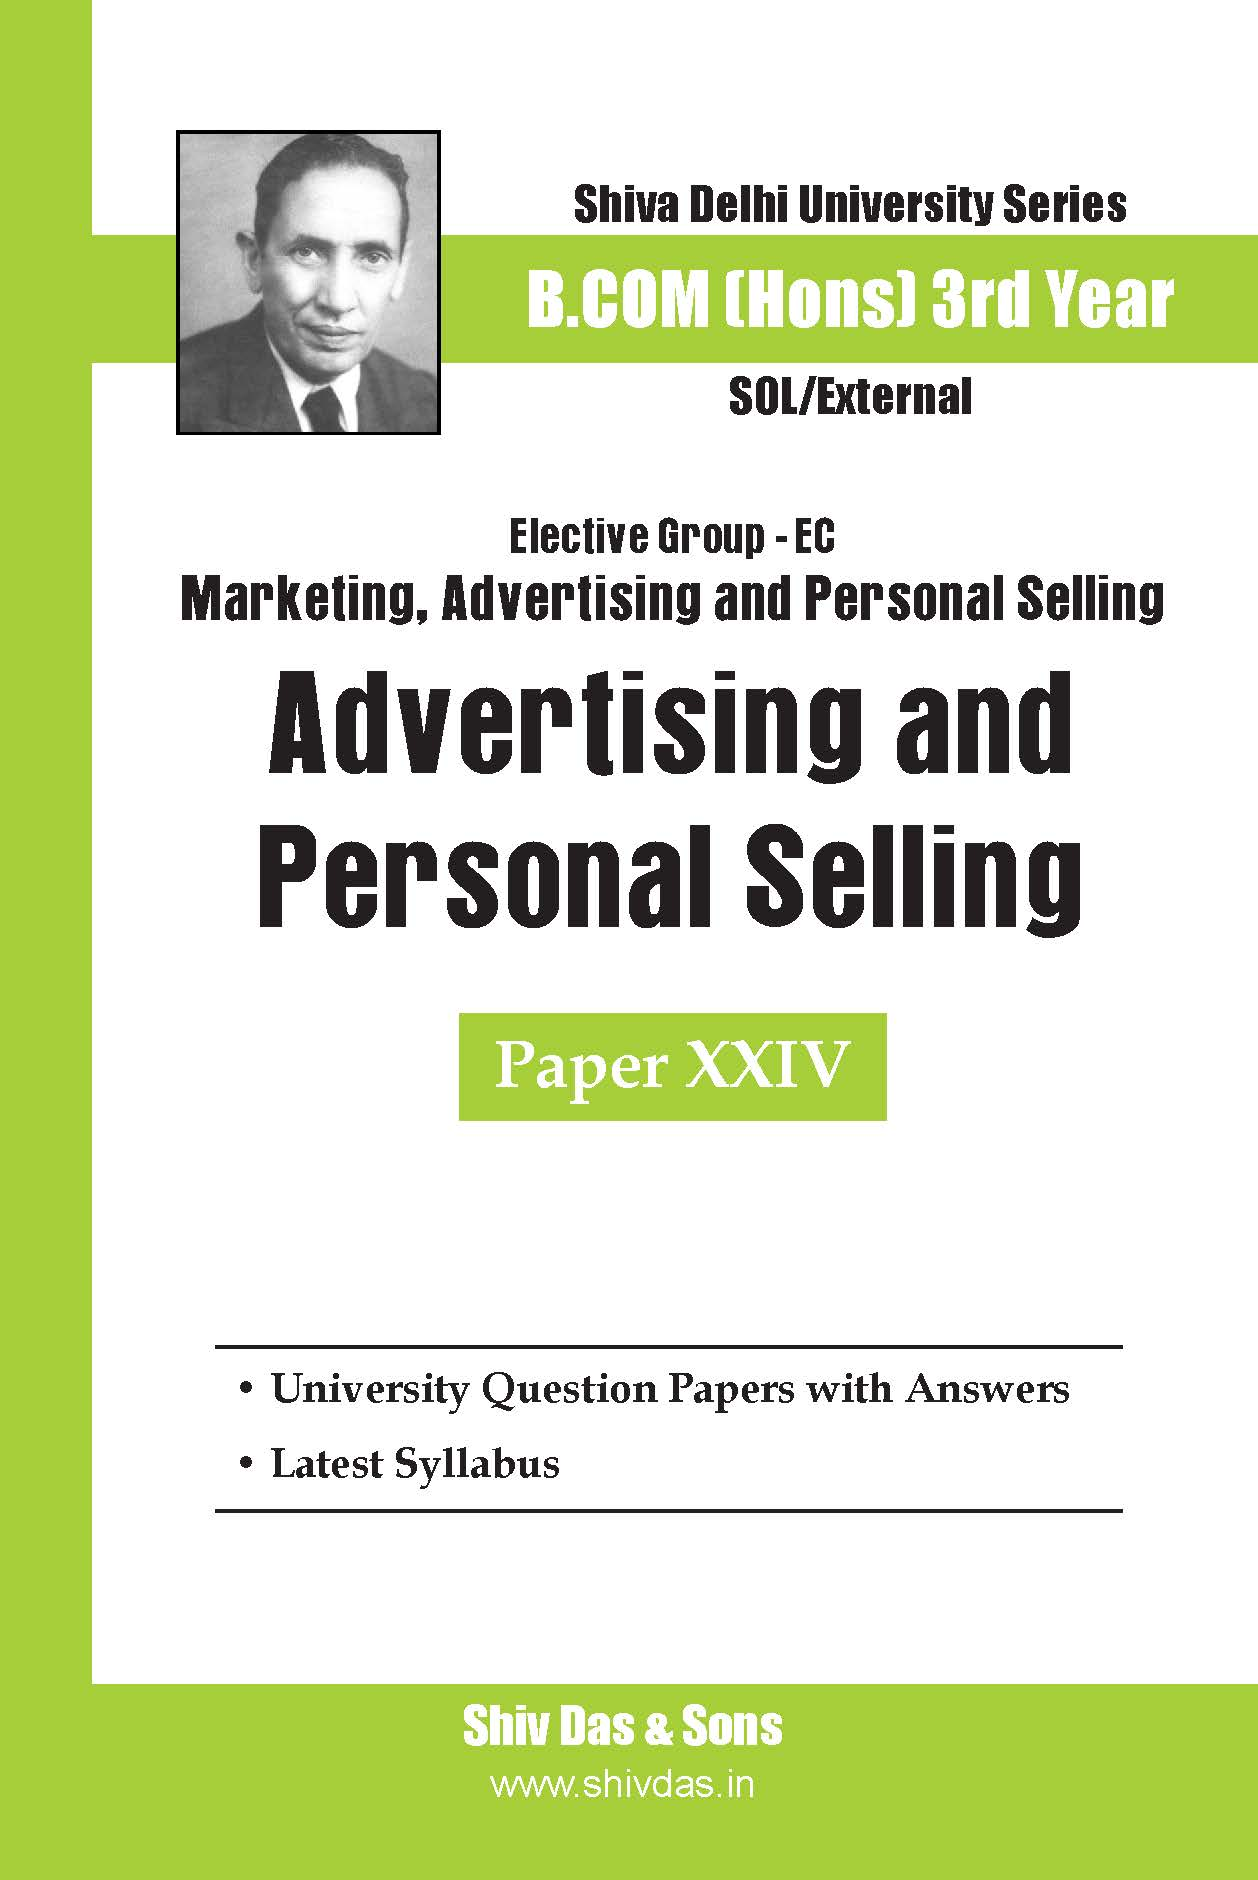 Advertising and Personal Selling for B.Com Hons SOL/External 3rd Year